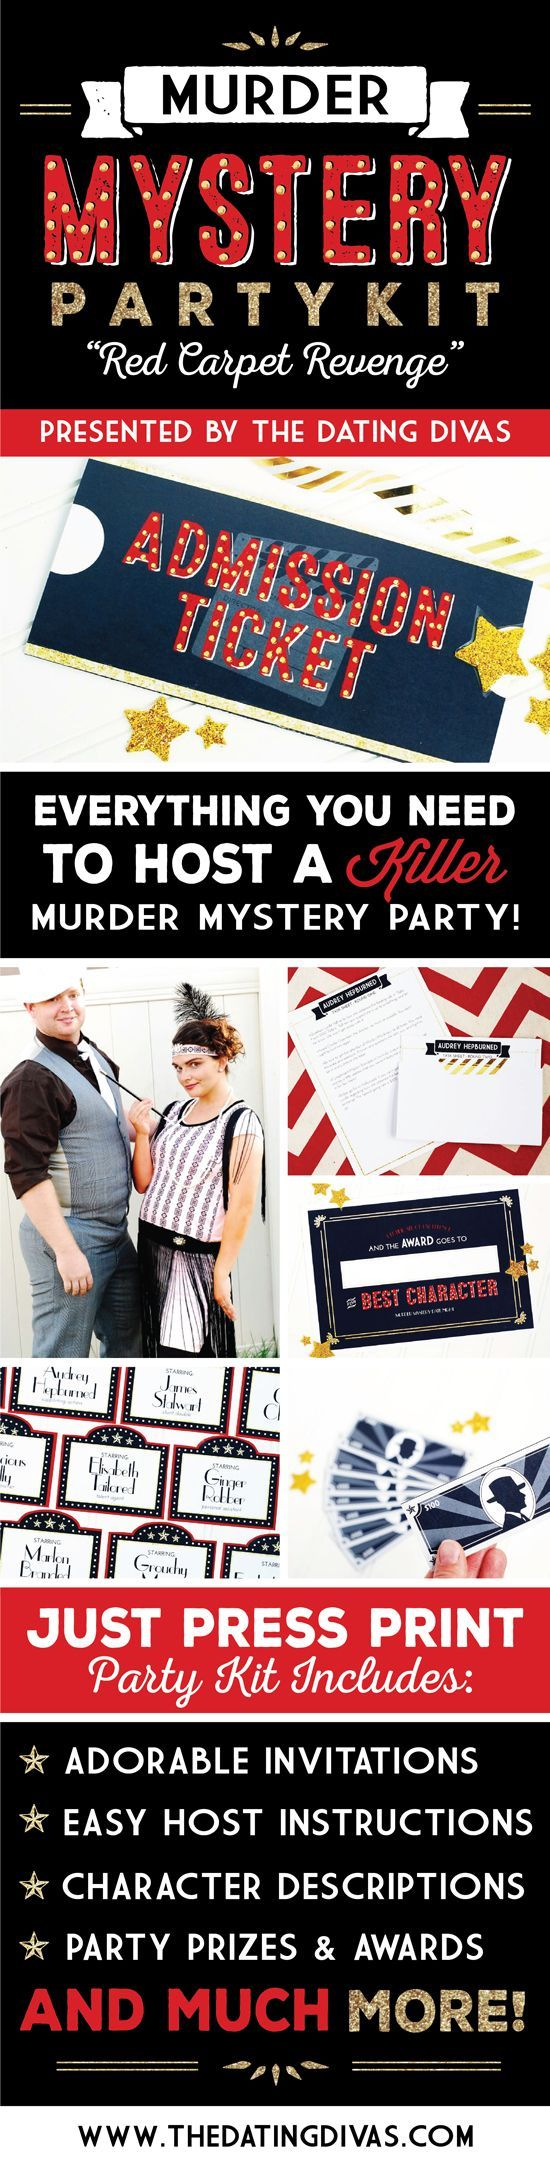 Seriously, the most FUN Murder Mystery Party Kit we have ever played! And gorgeous designs, too! This would be a FUN Halloween party!!! http://www.TheDatingDivas.com